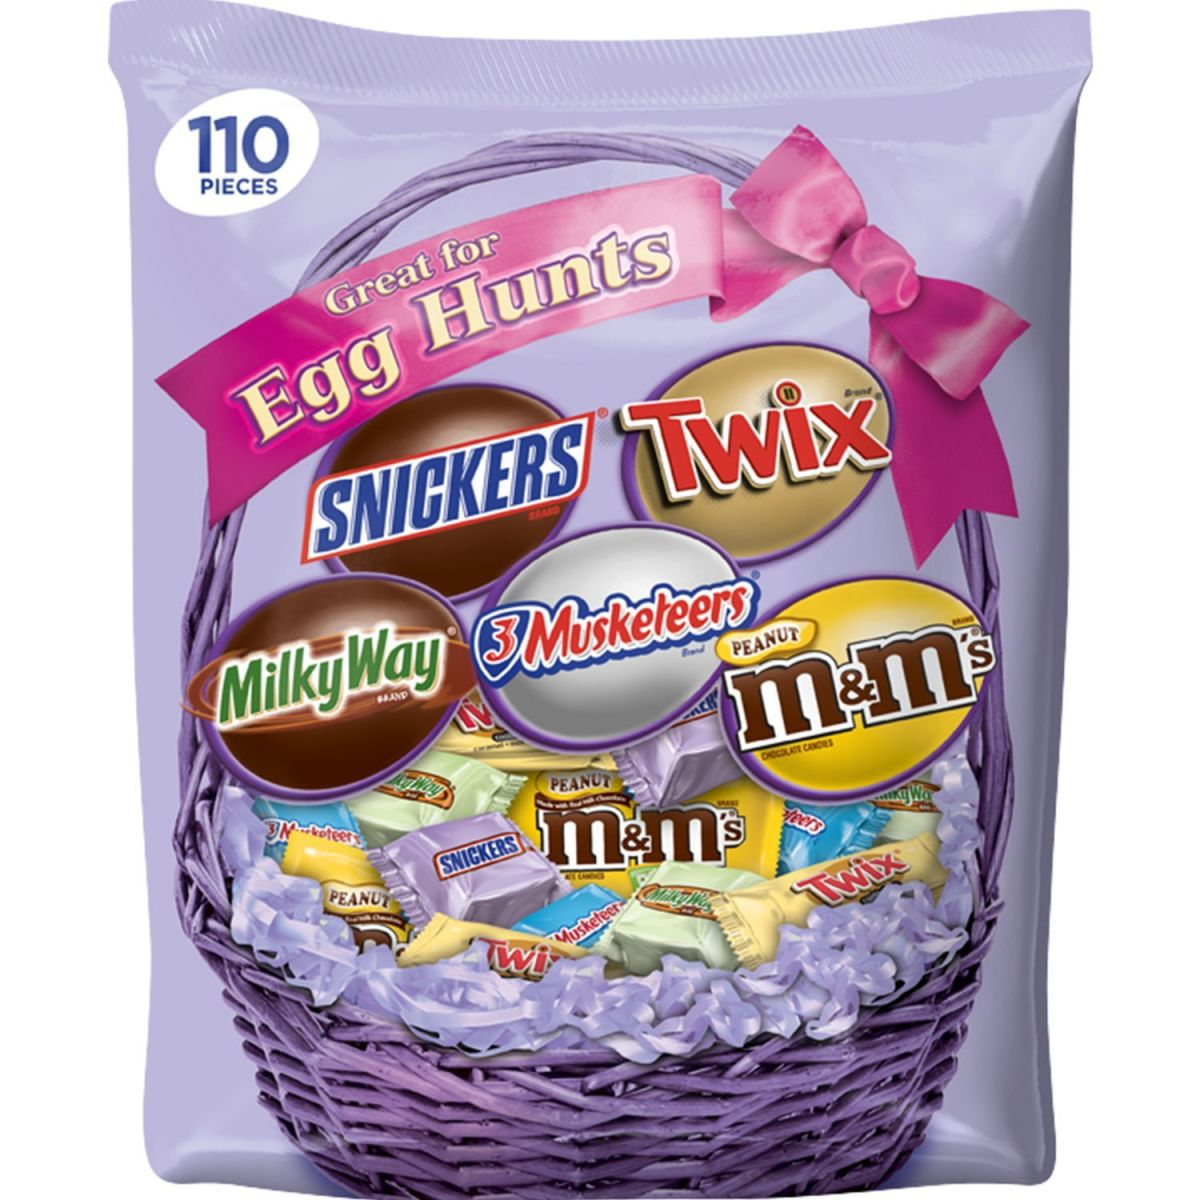 MARS Chocolate Easter Candy Spring Variety Mix 1245 Your Little Bunnies Will Be Delighted With This 110 Piece Bag Of Peanut MMs Milky Way Twix